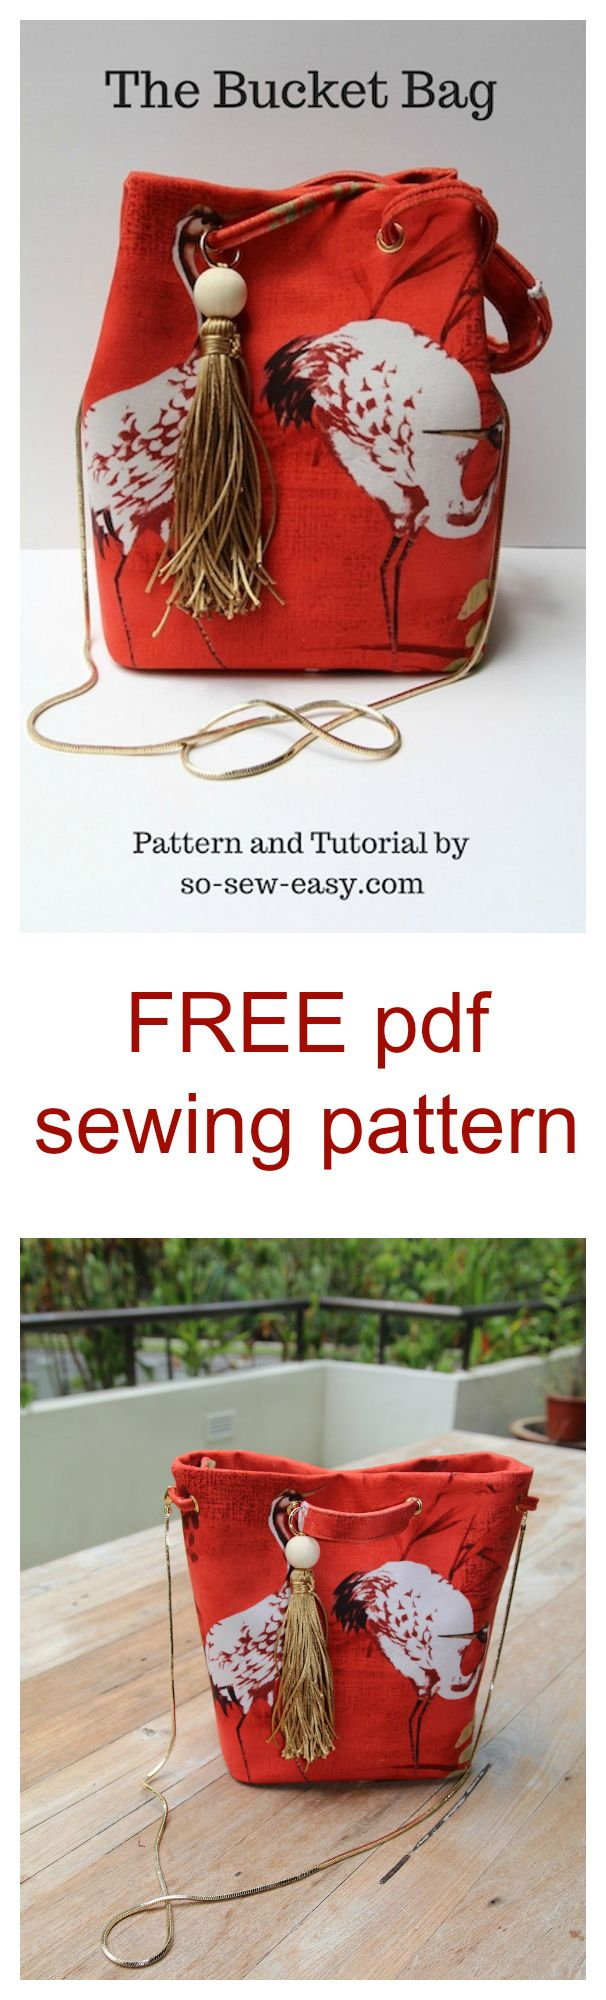 FREE pdf bag sewing pattern. This bucket bag pattern is the ideal project for those of you who would like to experiment with different materials.